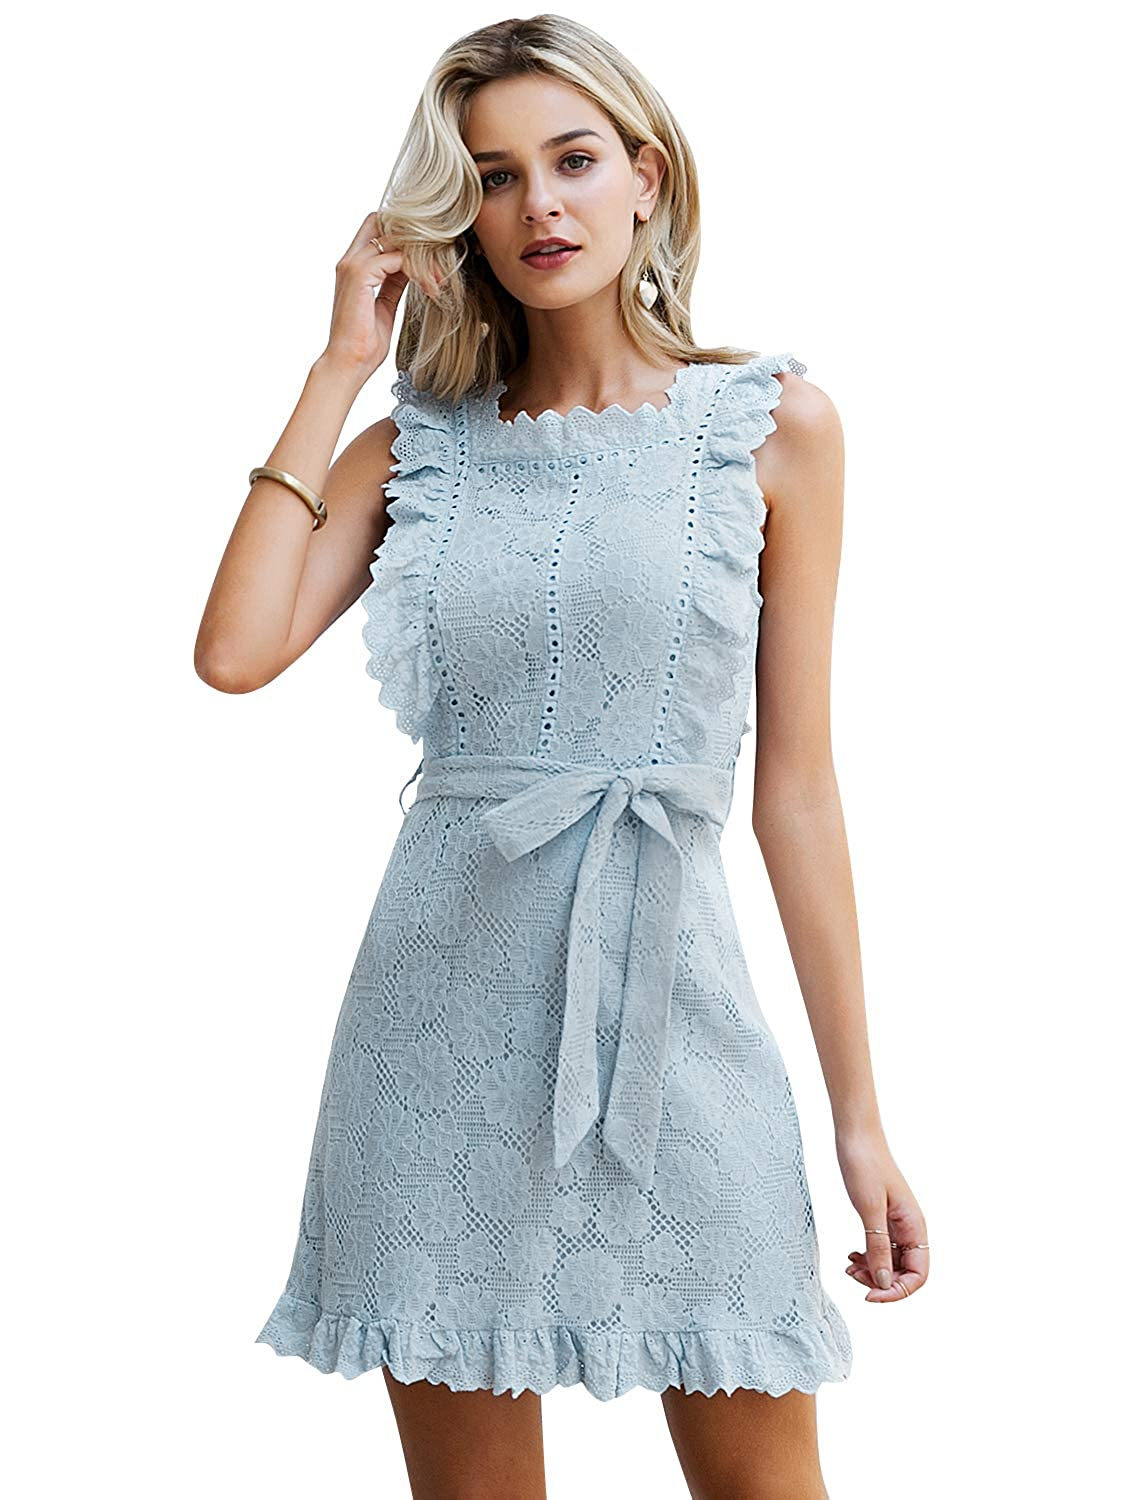 51e7b6ed0c83a Simplee Women's Half Sleeve Elegant Hollow Out Party Lace A Line Mini Dress  Gown